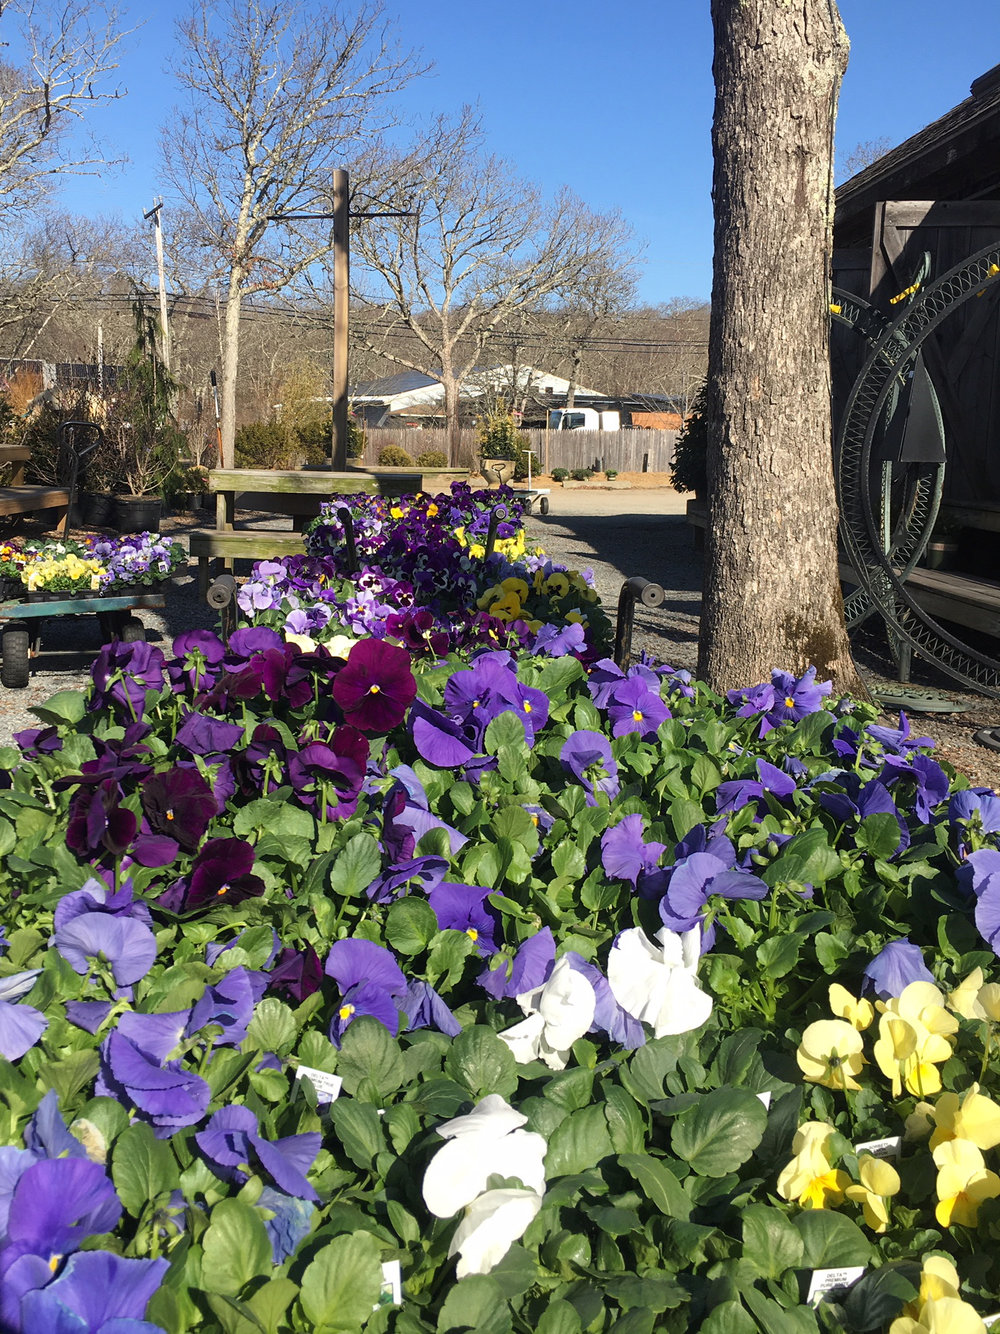 Pansies are in full color at the nursery!